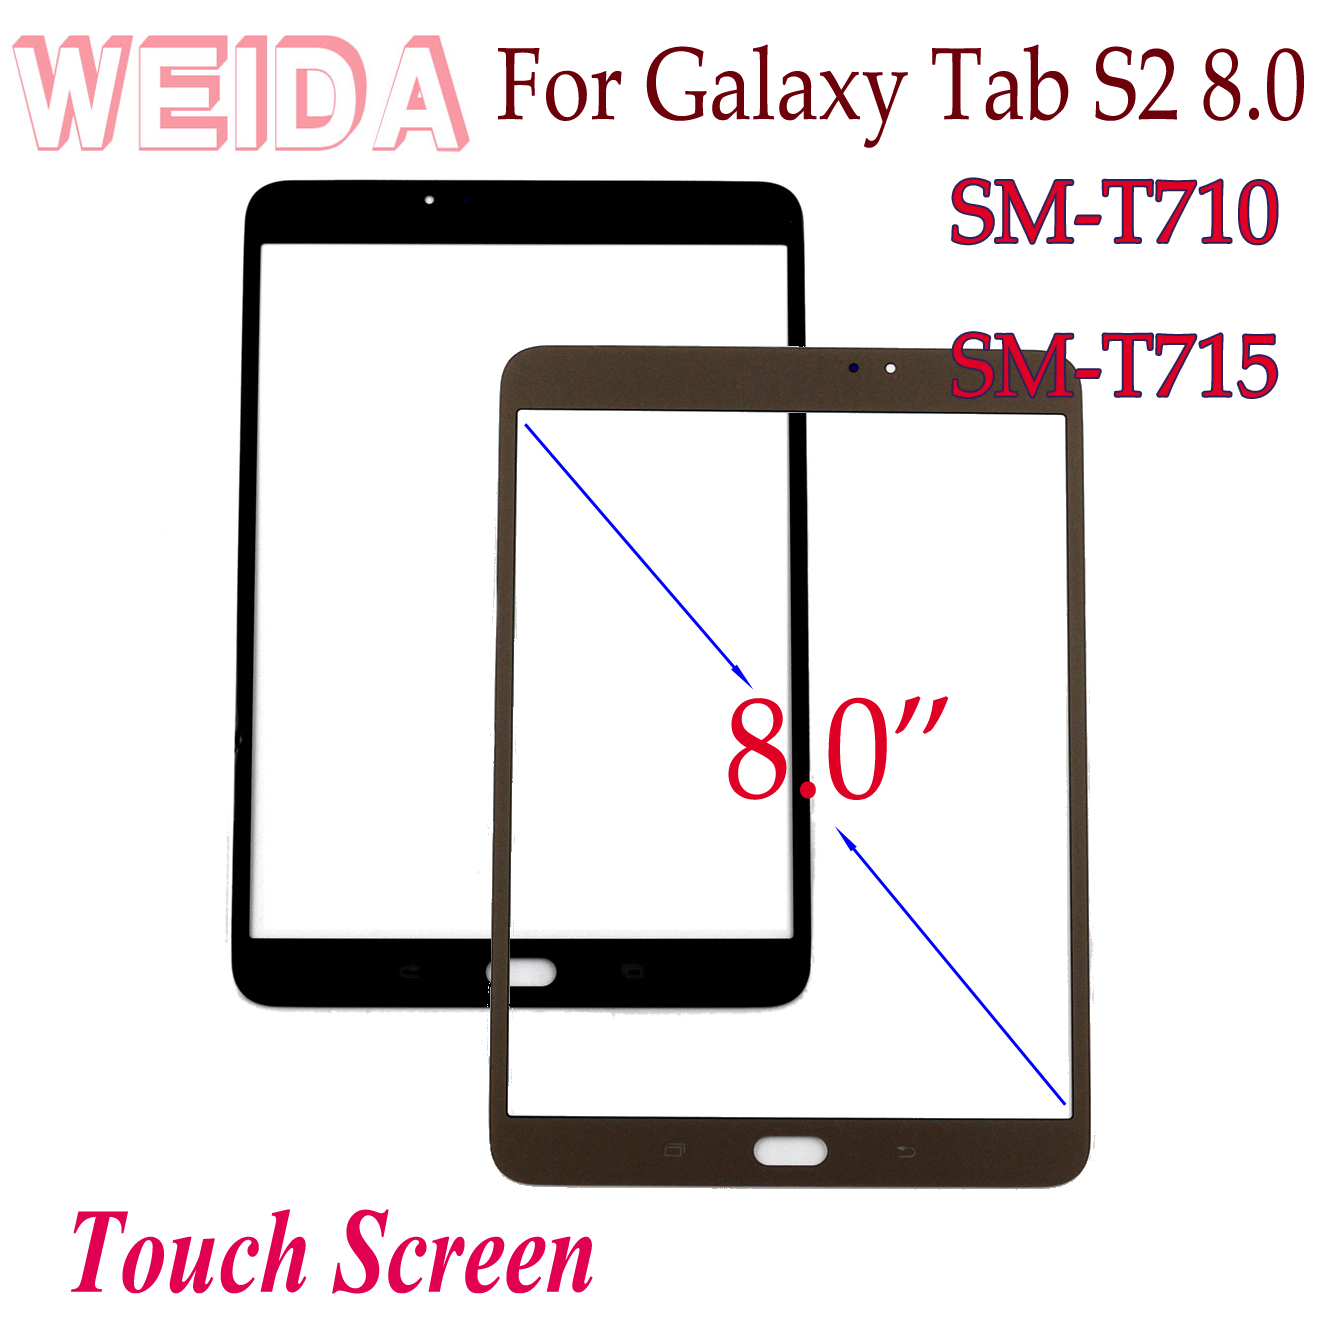 WEIDA Screen Replacment For Samsung Galaxy Tab S2 8.0 SM-T710 SM-T715 Touch Screen Glass Panel